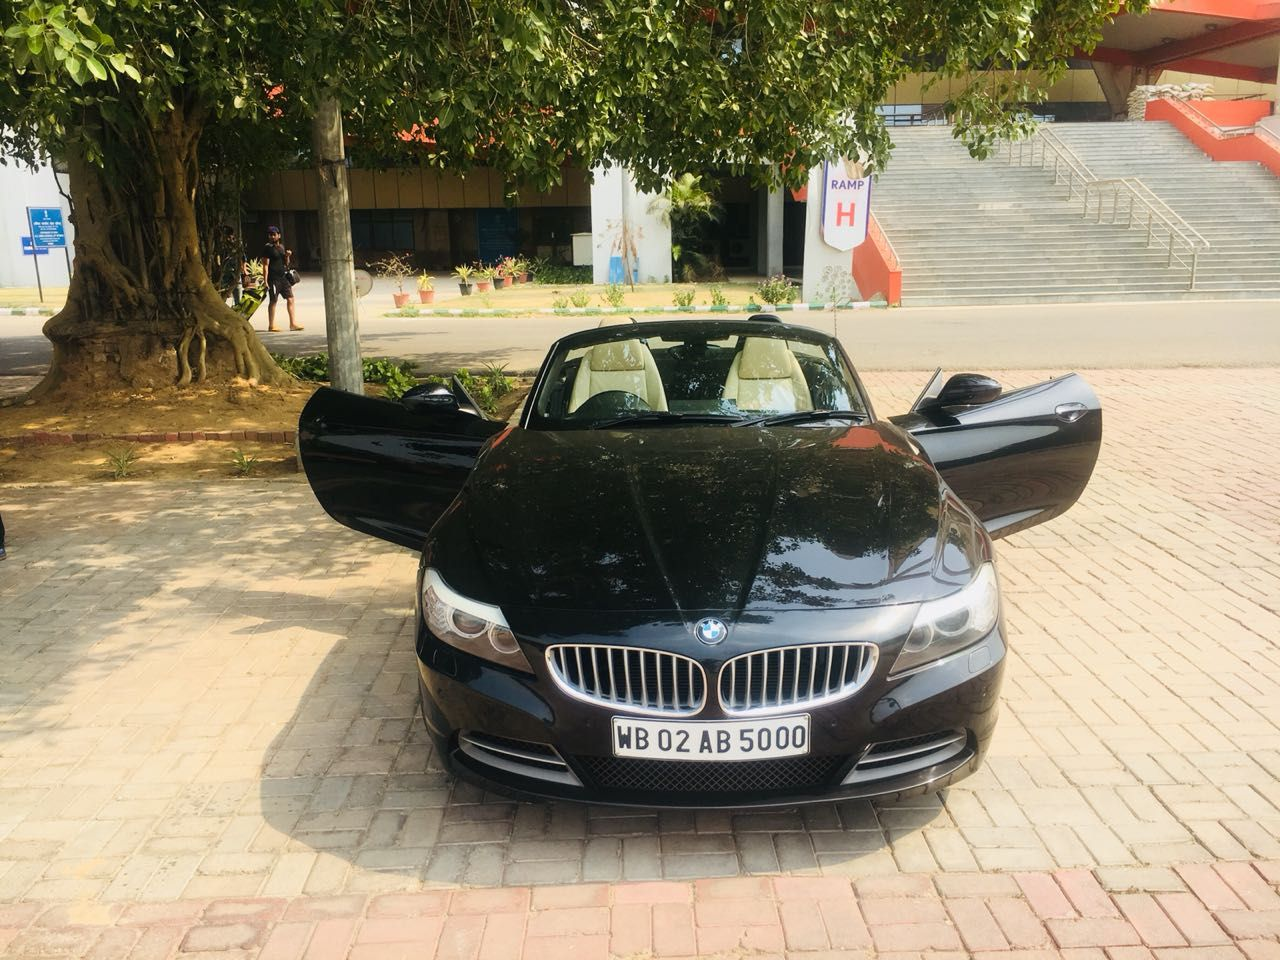 Used Bmw For Sale In Delhi New Delhi India At Salemycar Today